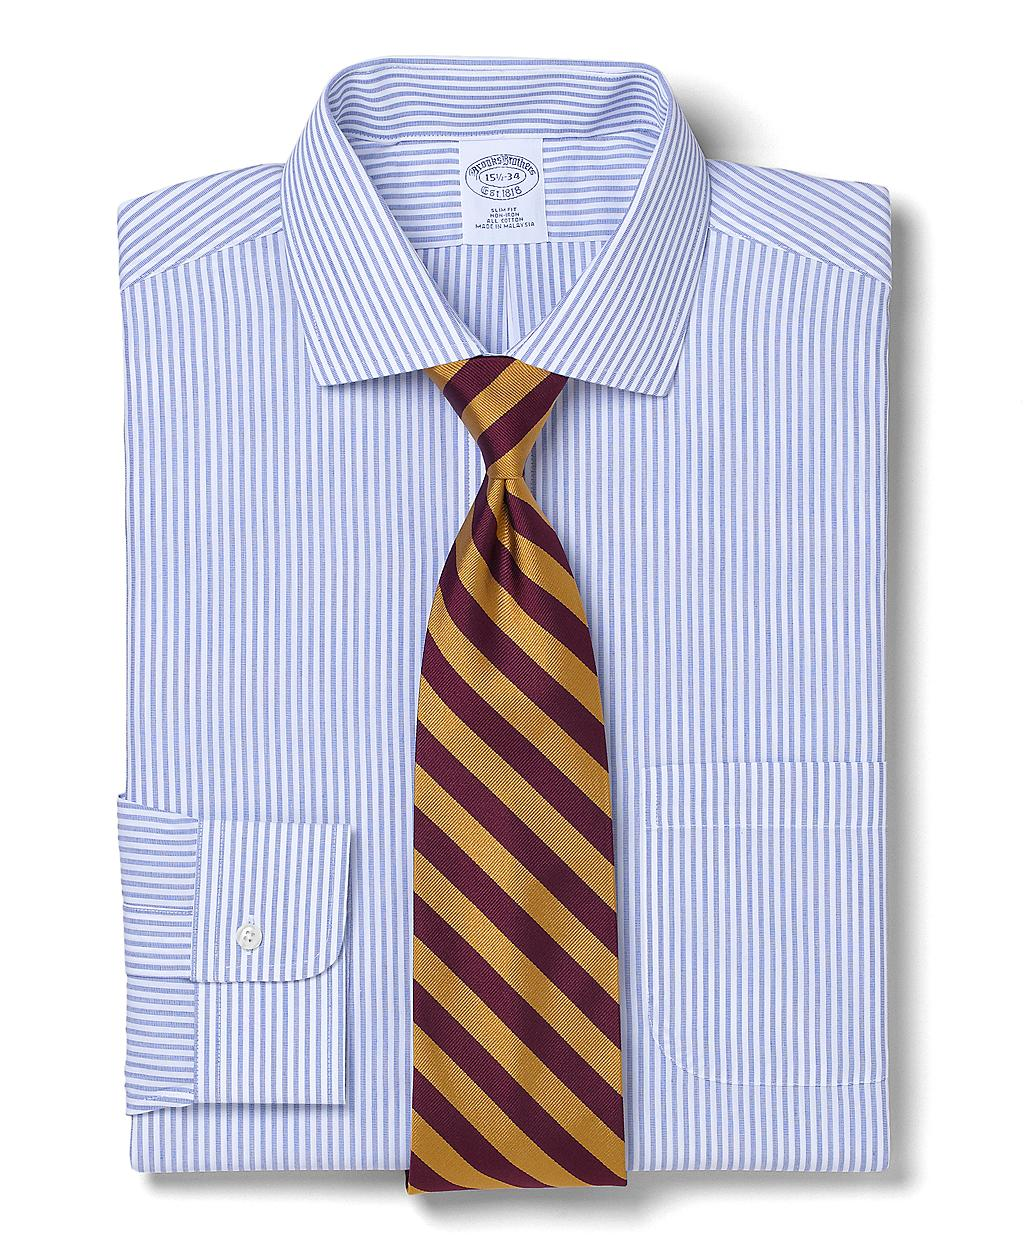 Brooks brothers allcotton noniron slim fit endonend bengal for Brooks brothers dress shirt fit guide